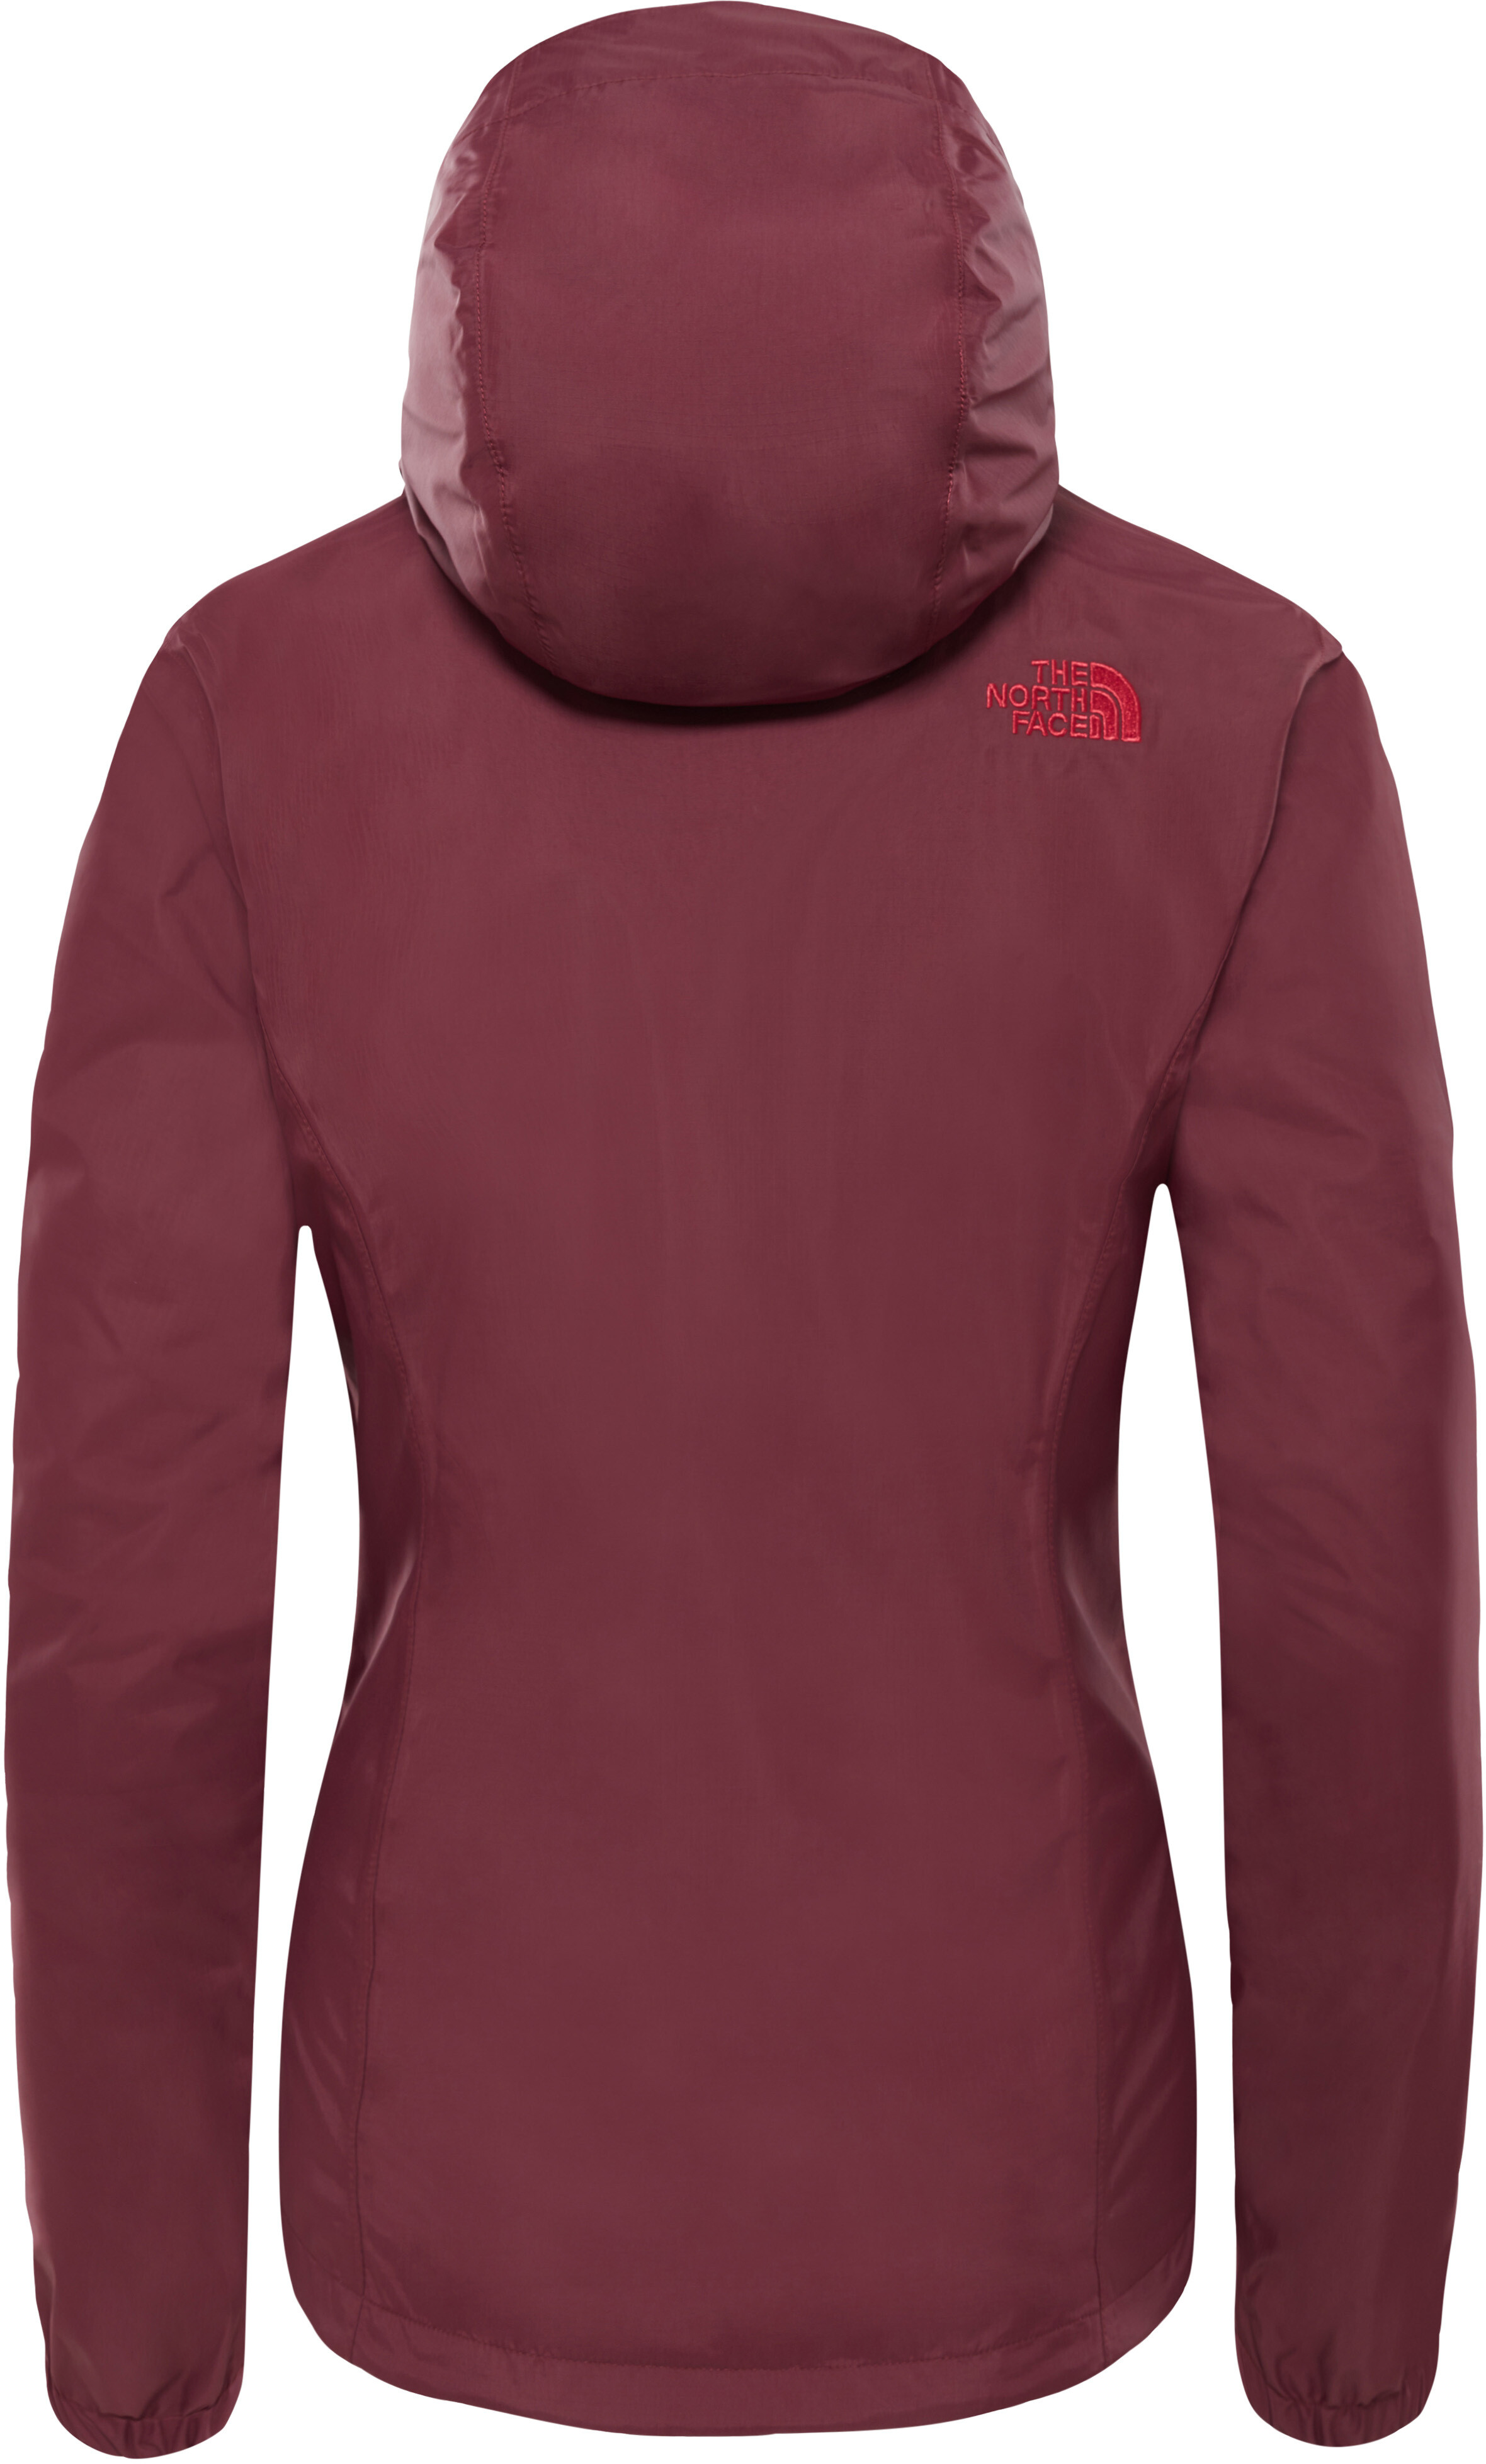 The North Face Resolve 2 - Veste Femme - rouge sur CAMPZ ! 540a738cbe75